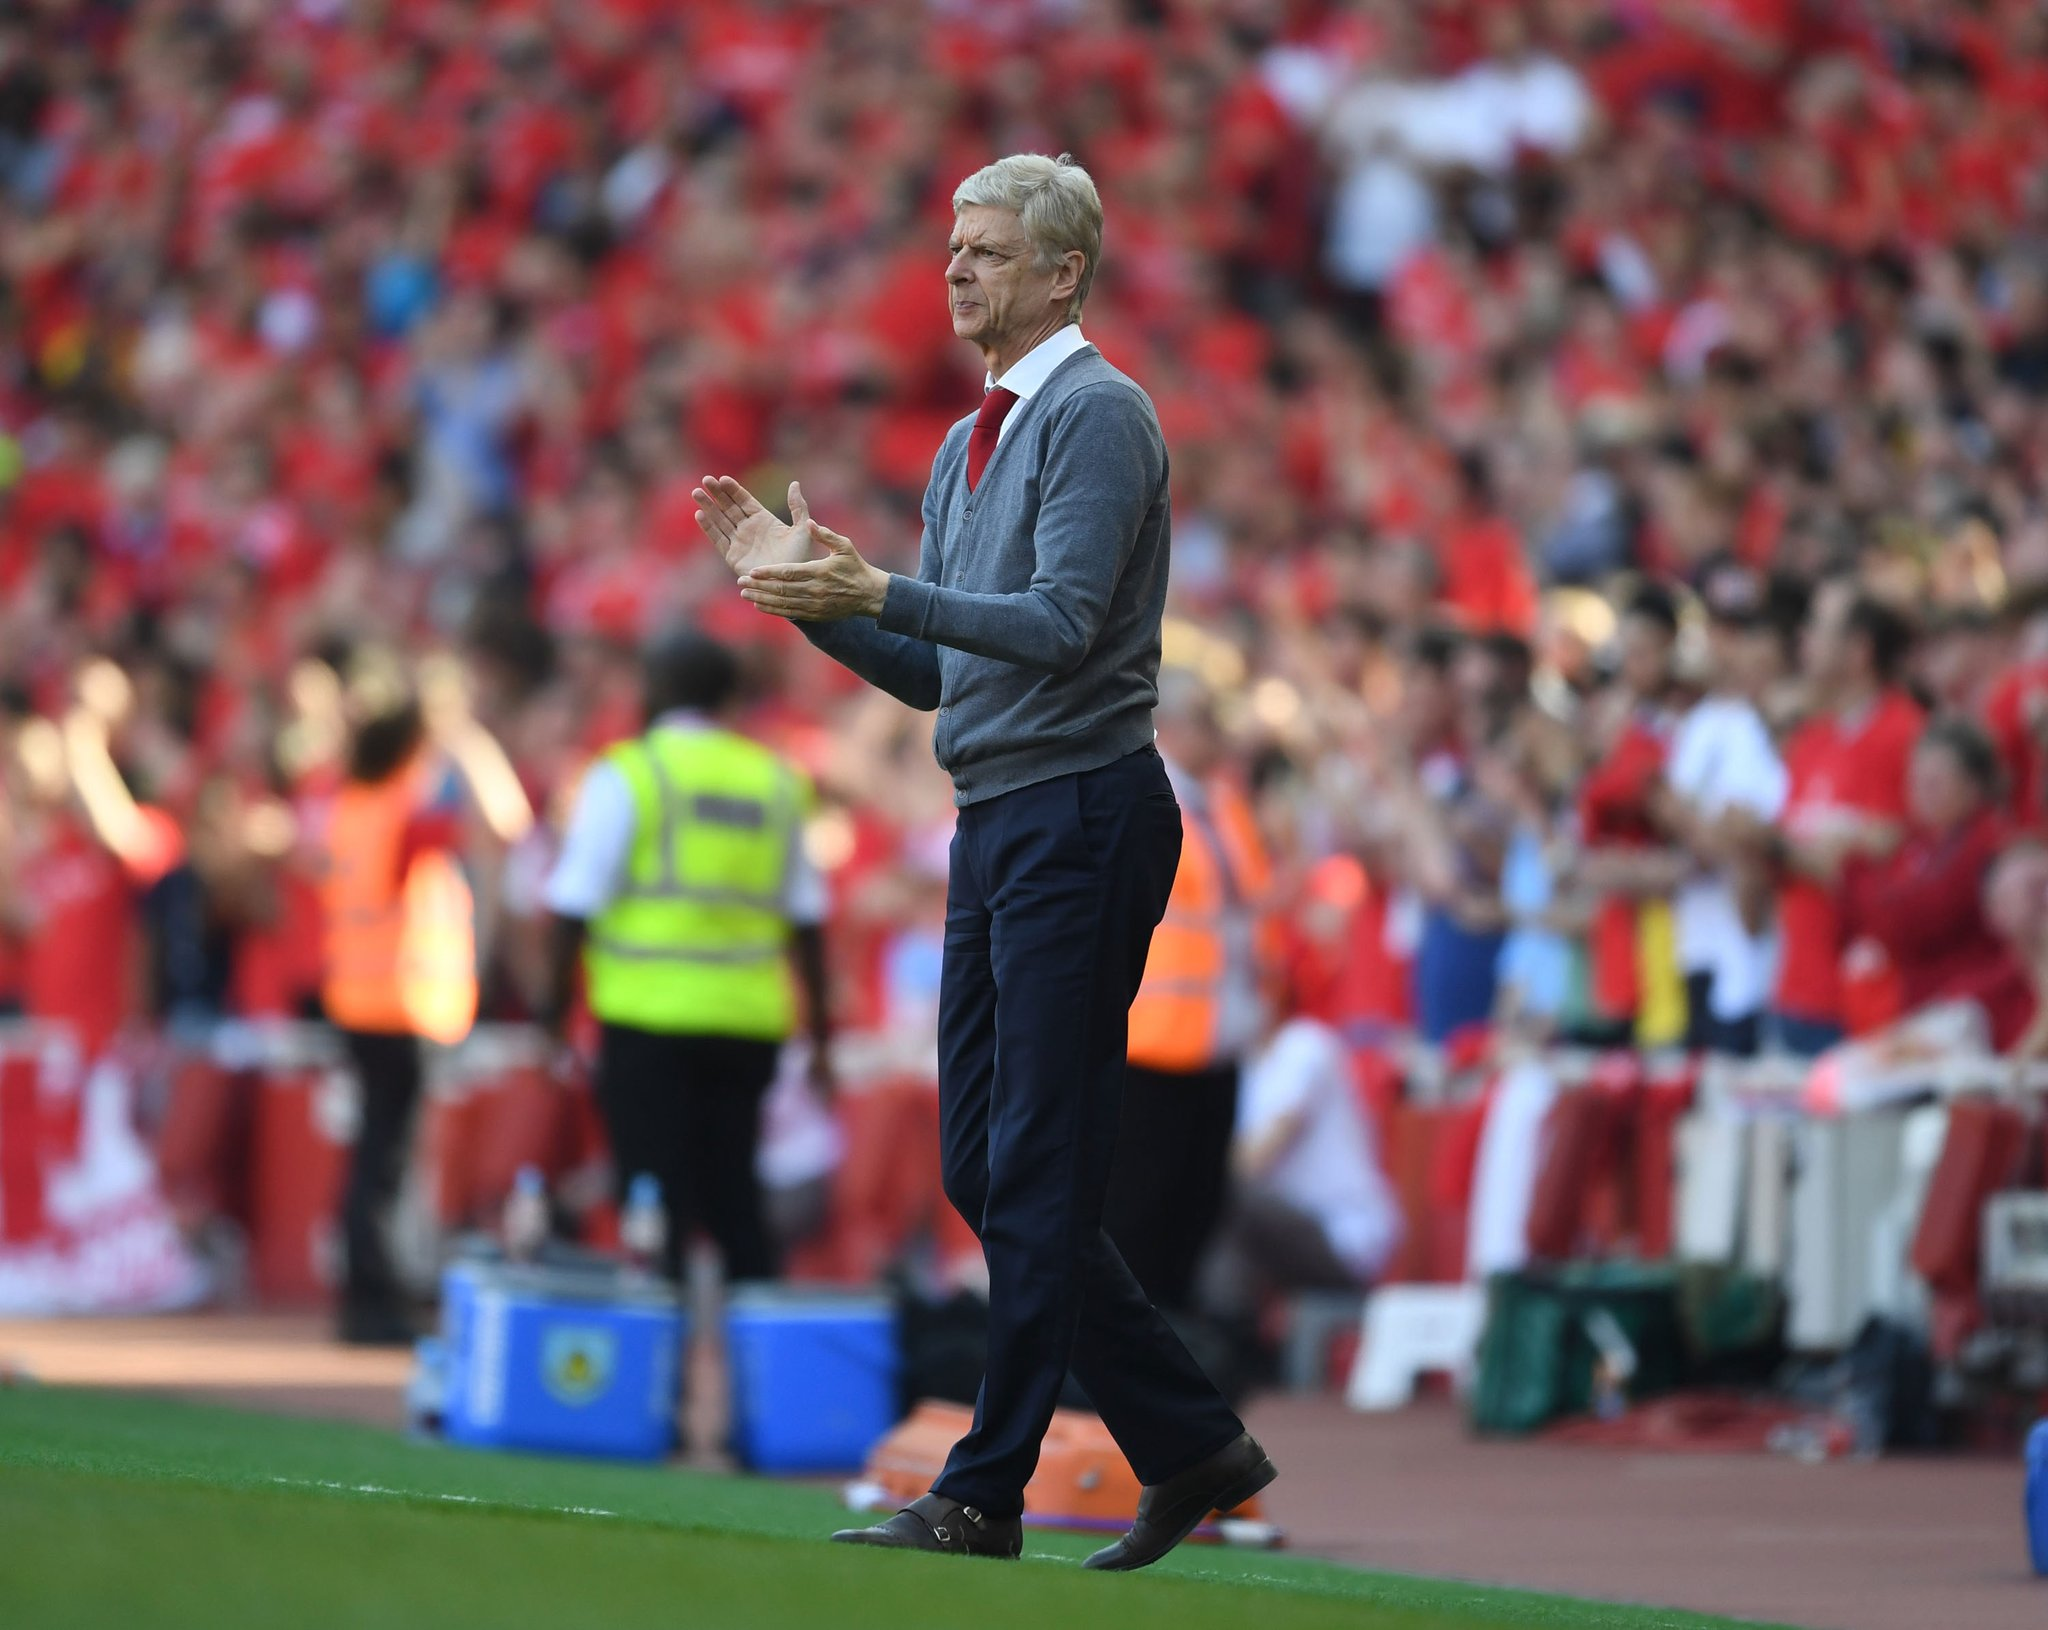 Wenger applaudit